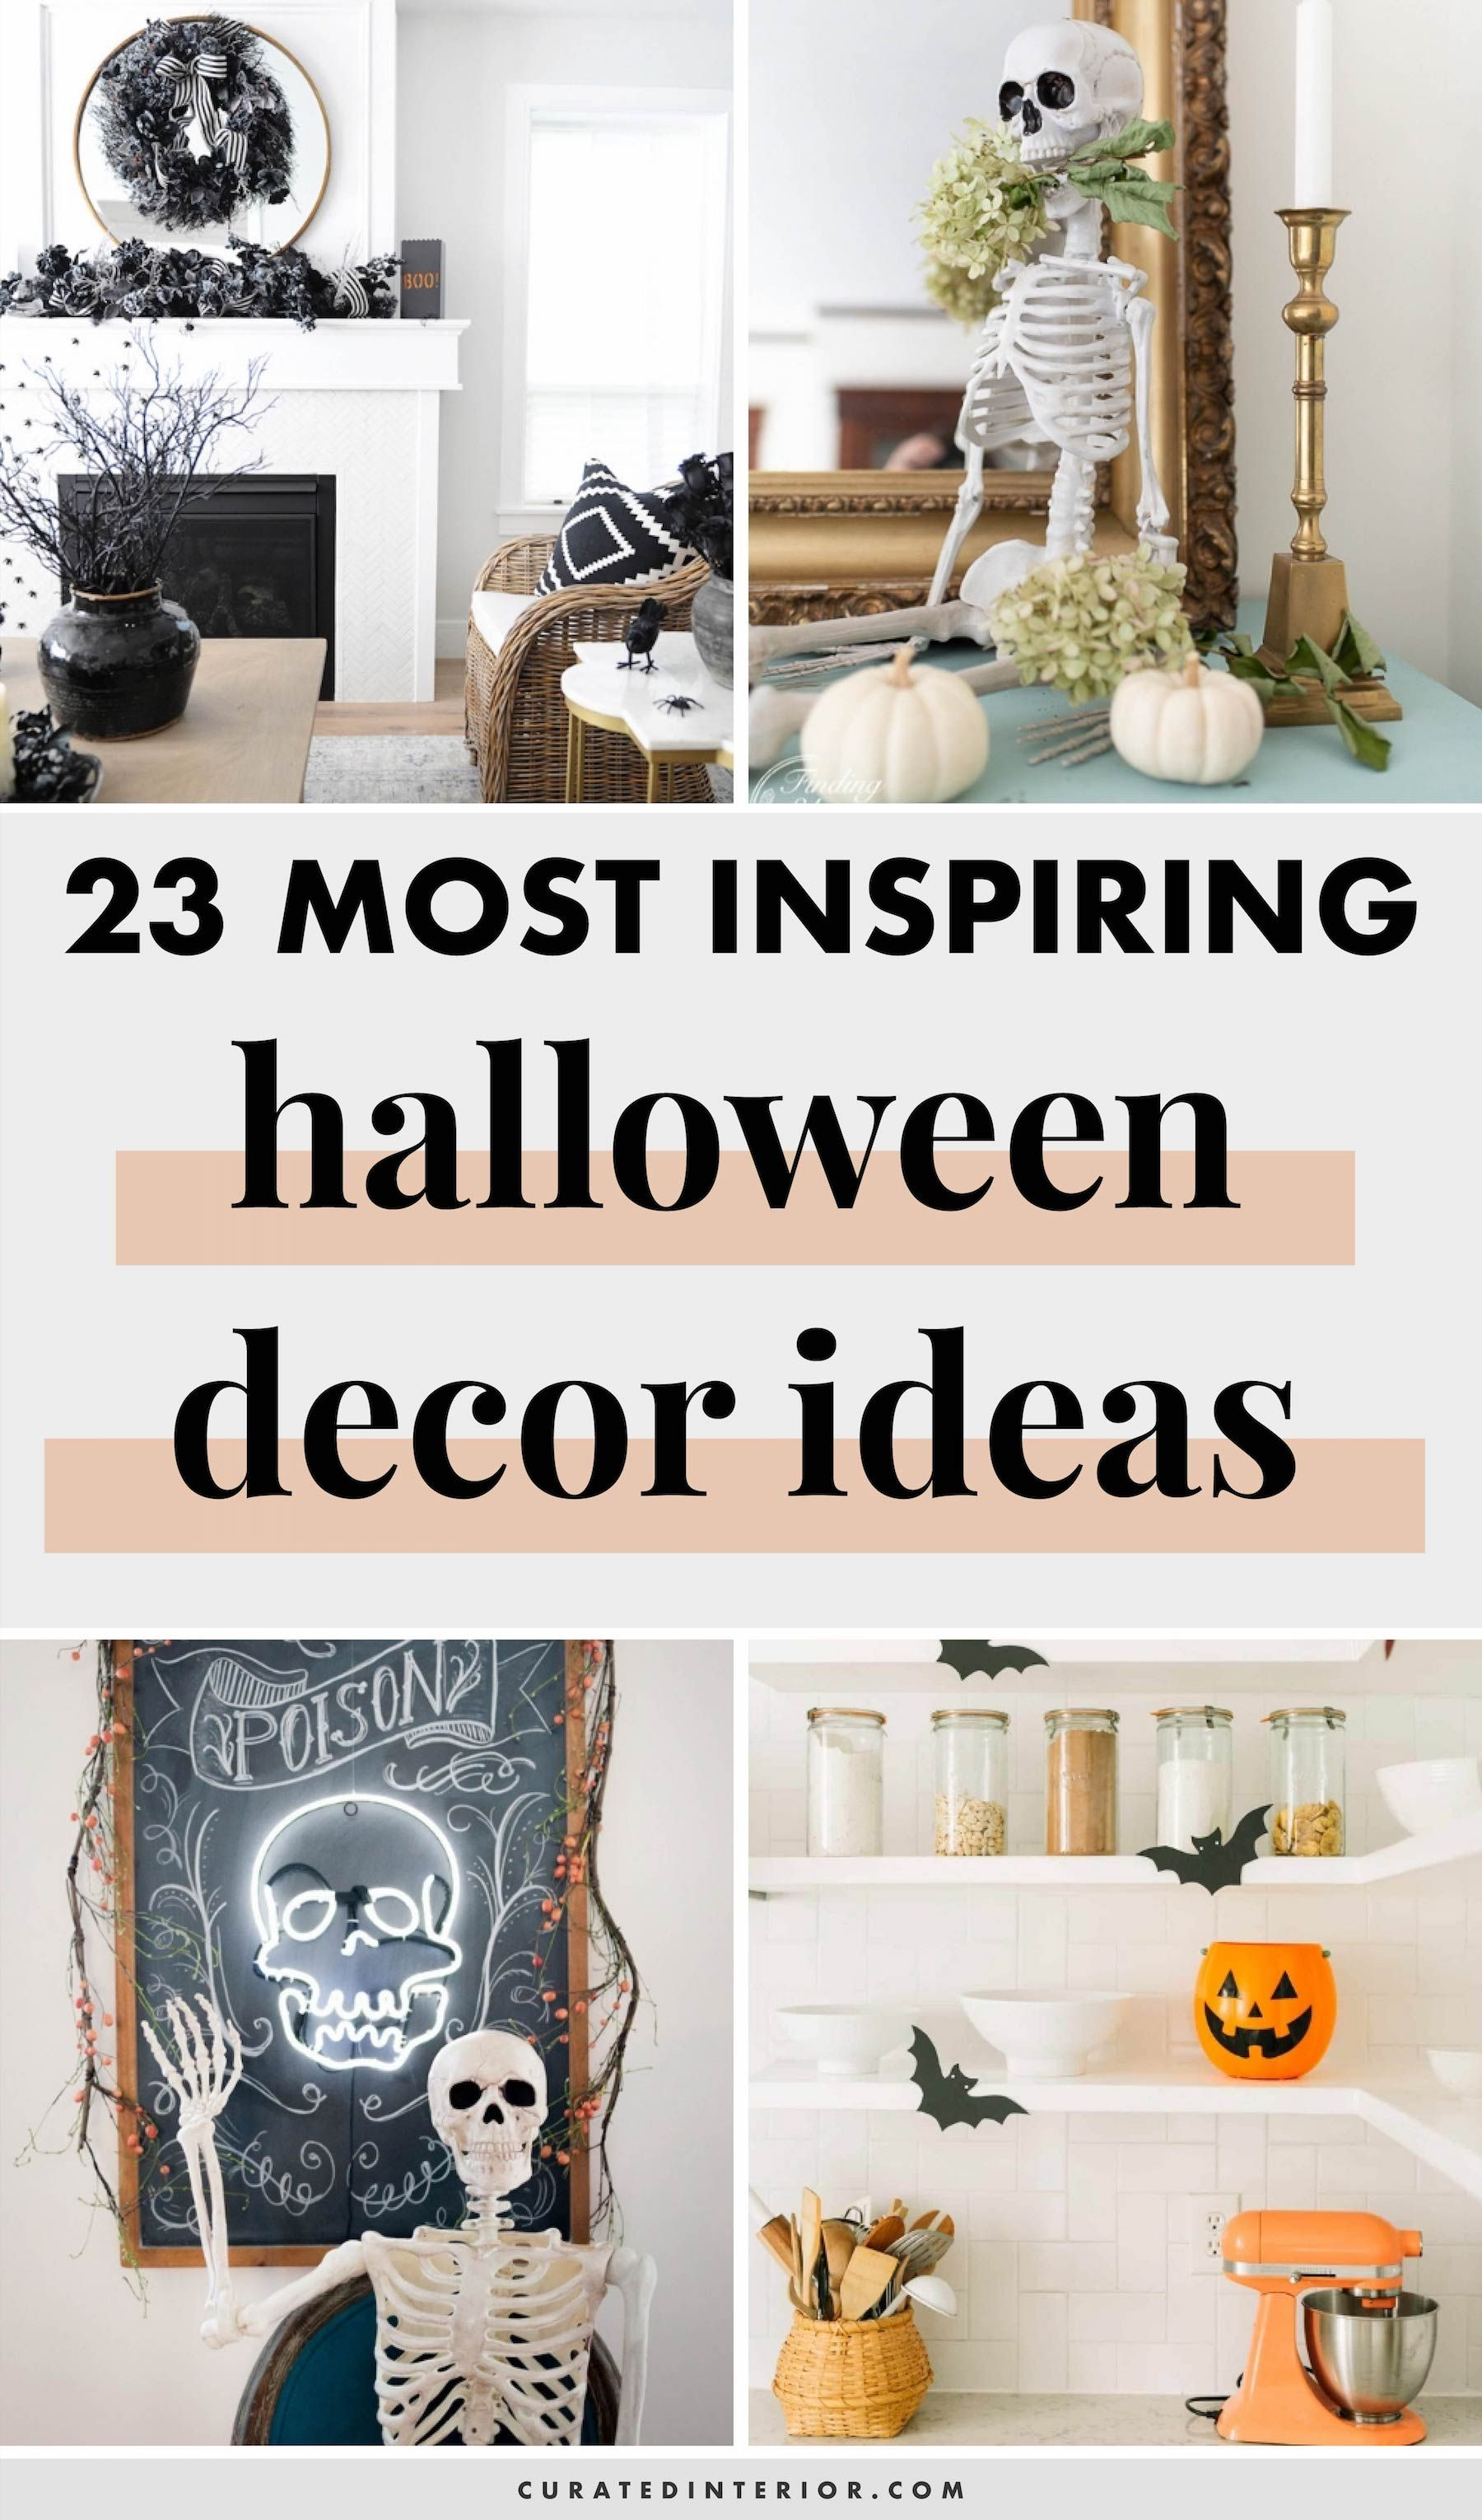 23 Chic Yet Spooky Halloween Decor Ideas For The Home Halloween Decorations Spooky Halloween Decorations Creepy Halloween Decorations